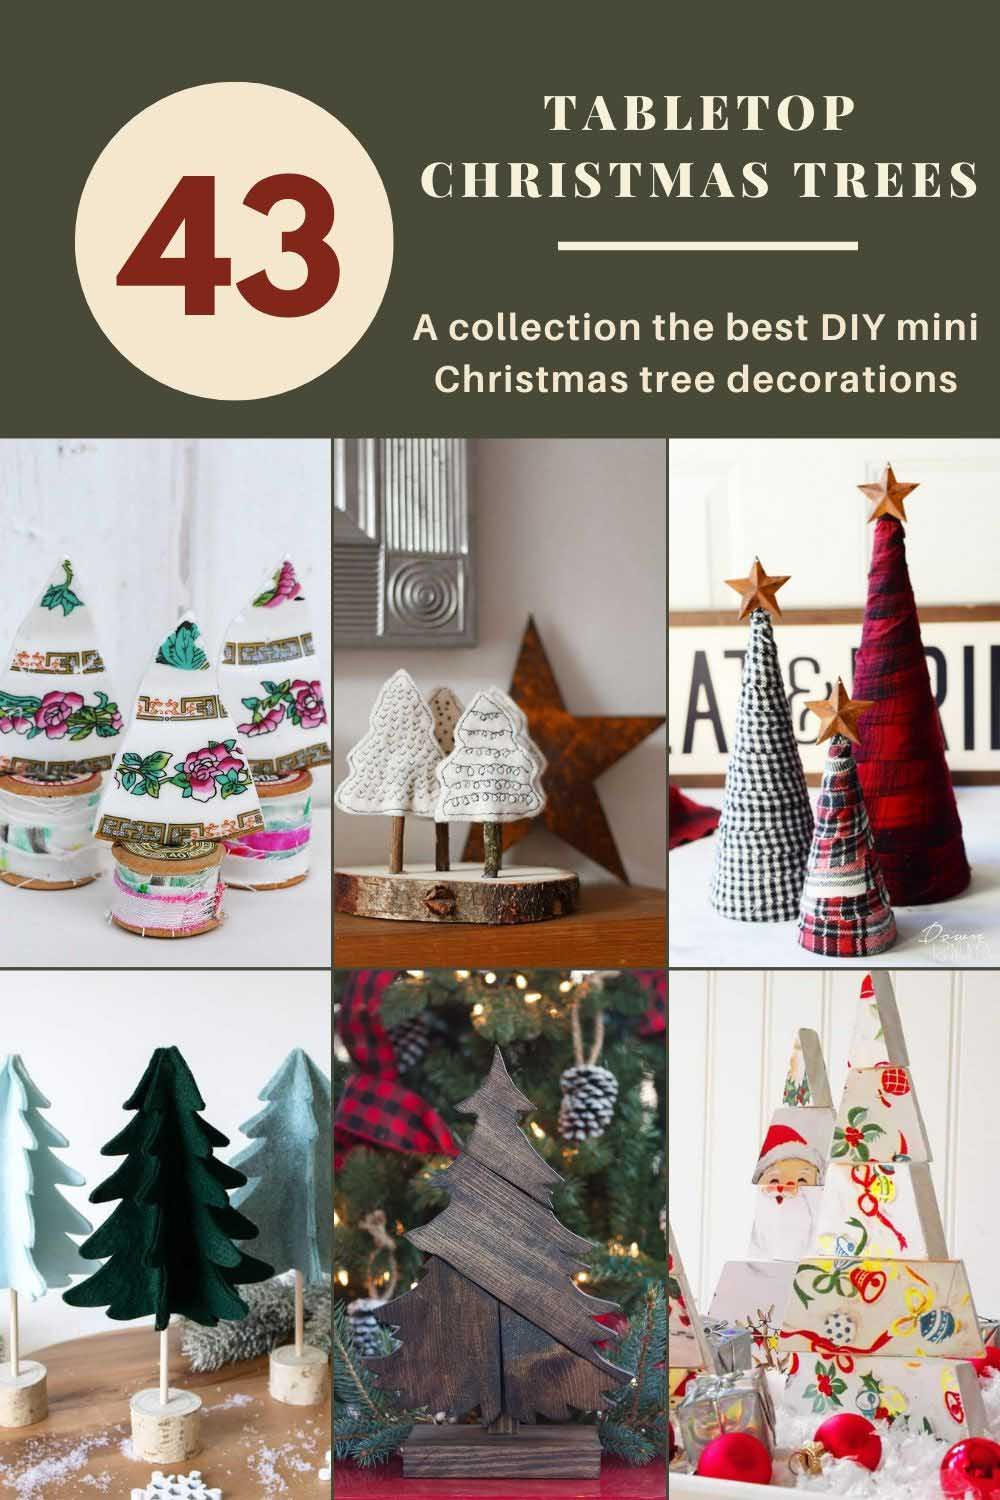 43 tabletop Christmas tree decorations